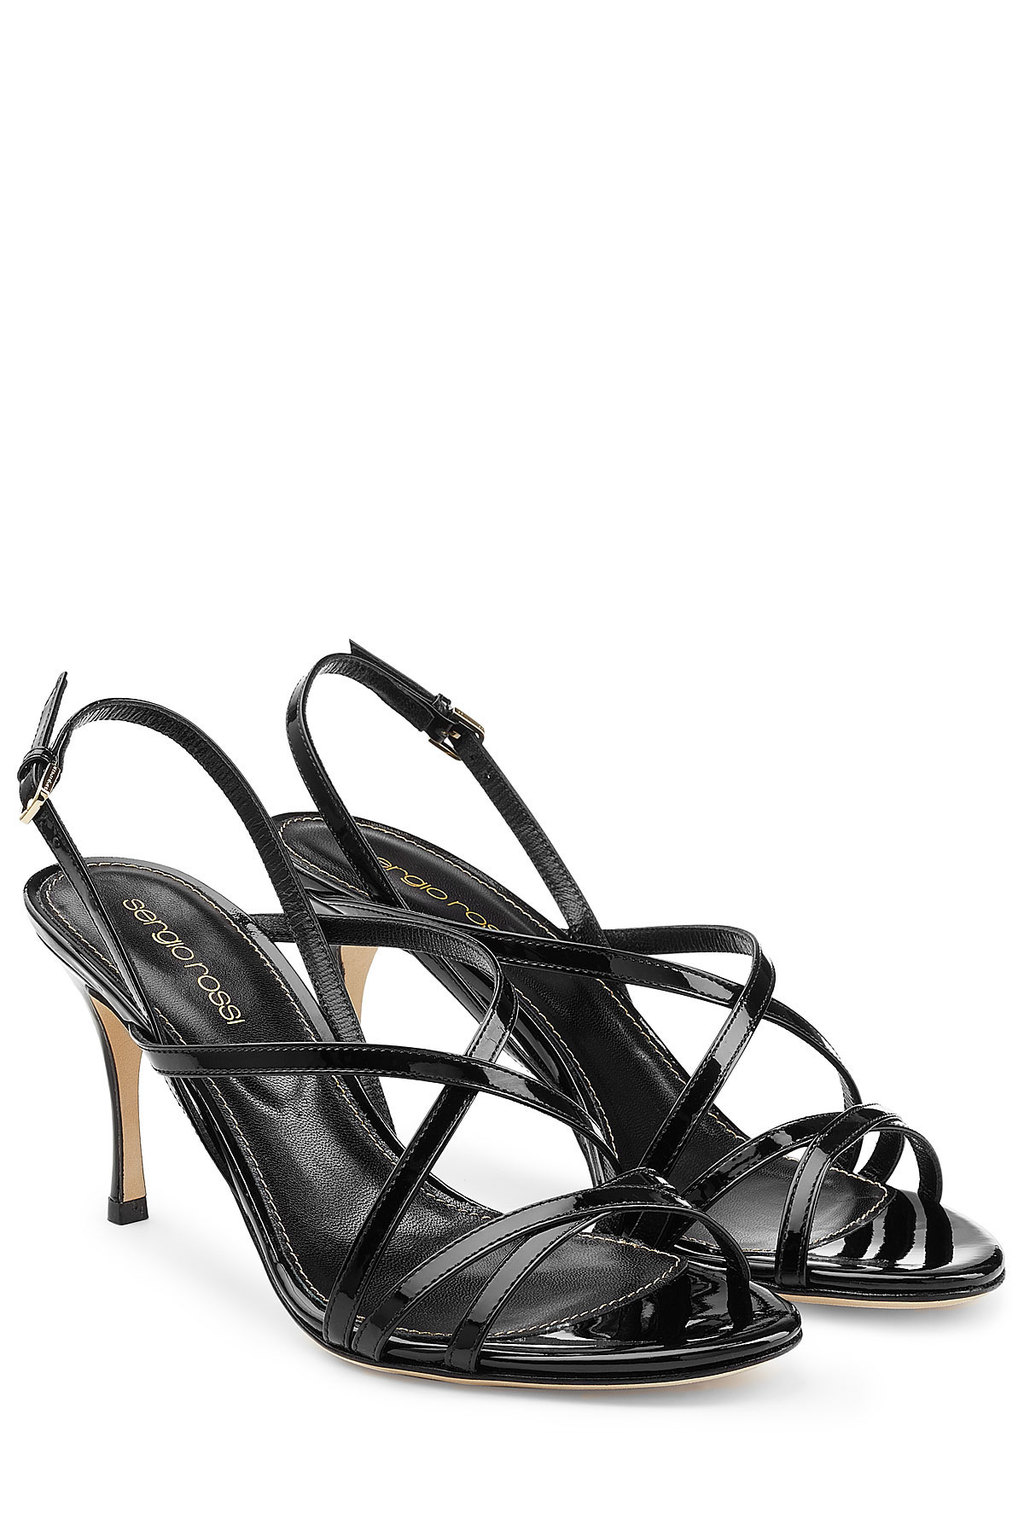 Patent Leather Mid Heel Sandals Black - predominant colour: black; occasions: evening; material: leather; heel height: high; heel: stiletto; toe: open toe/peeptoe; style: strappy; finish: plain; pattern: plain; season: s/s 2016